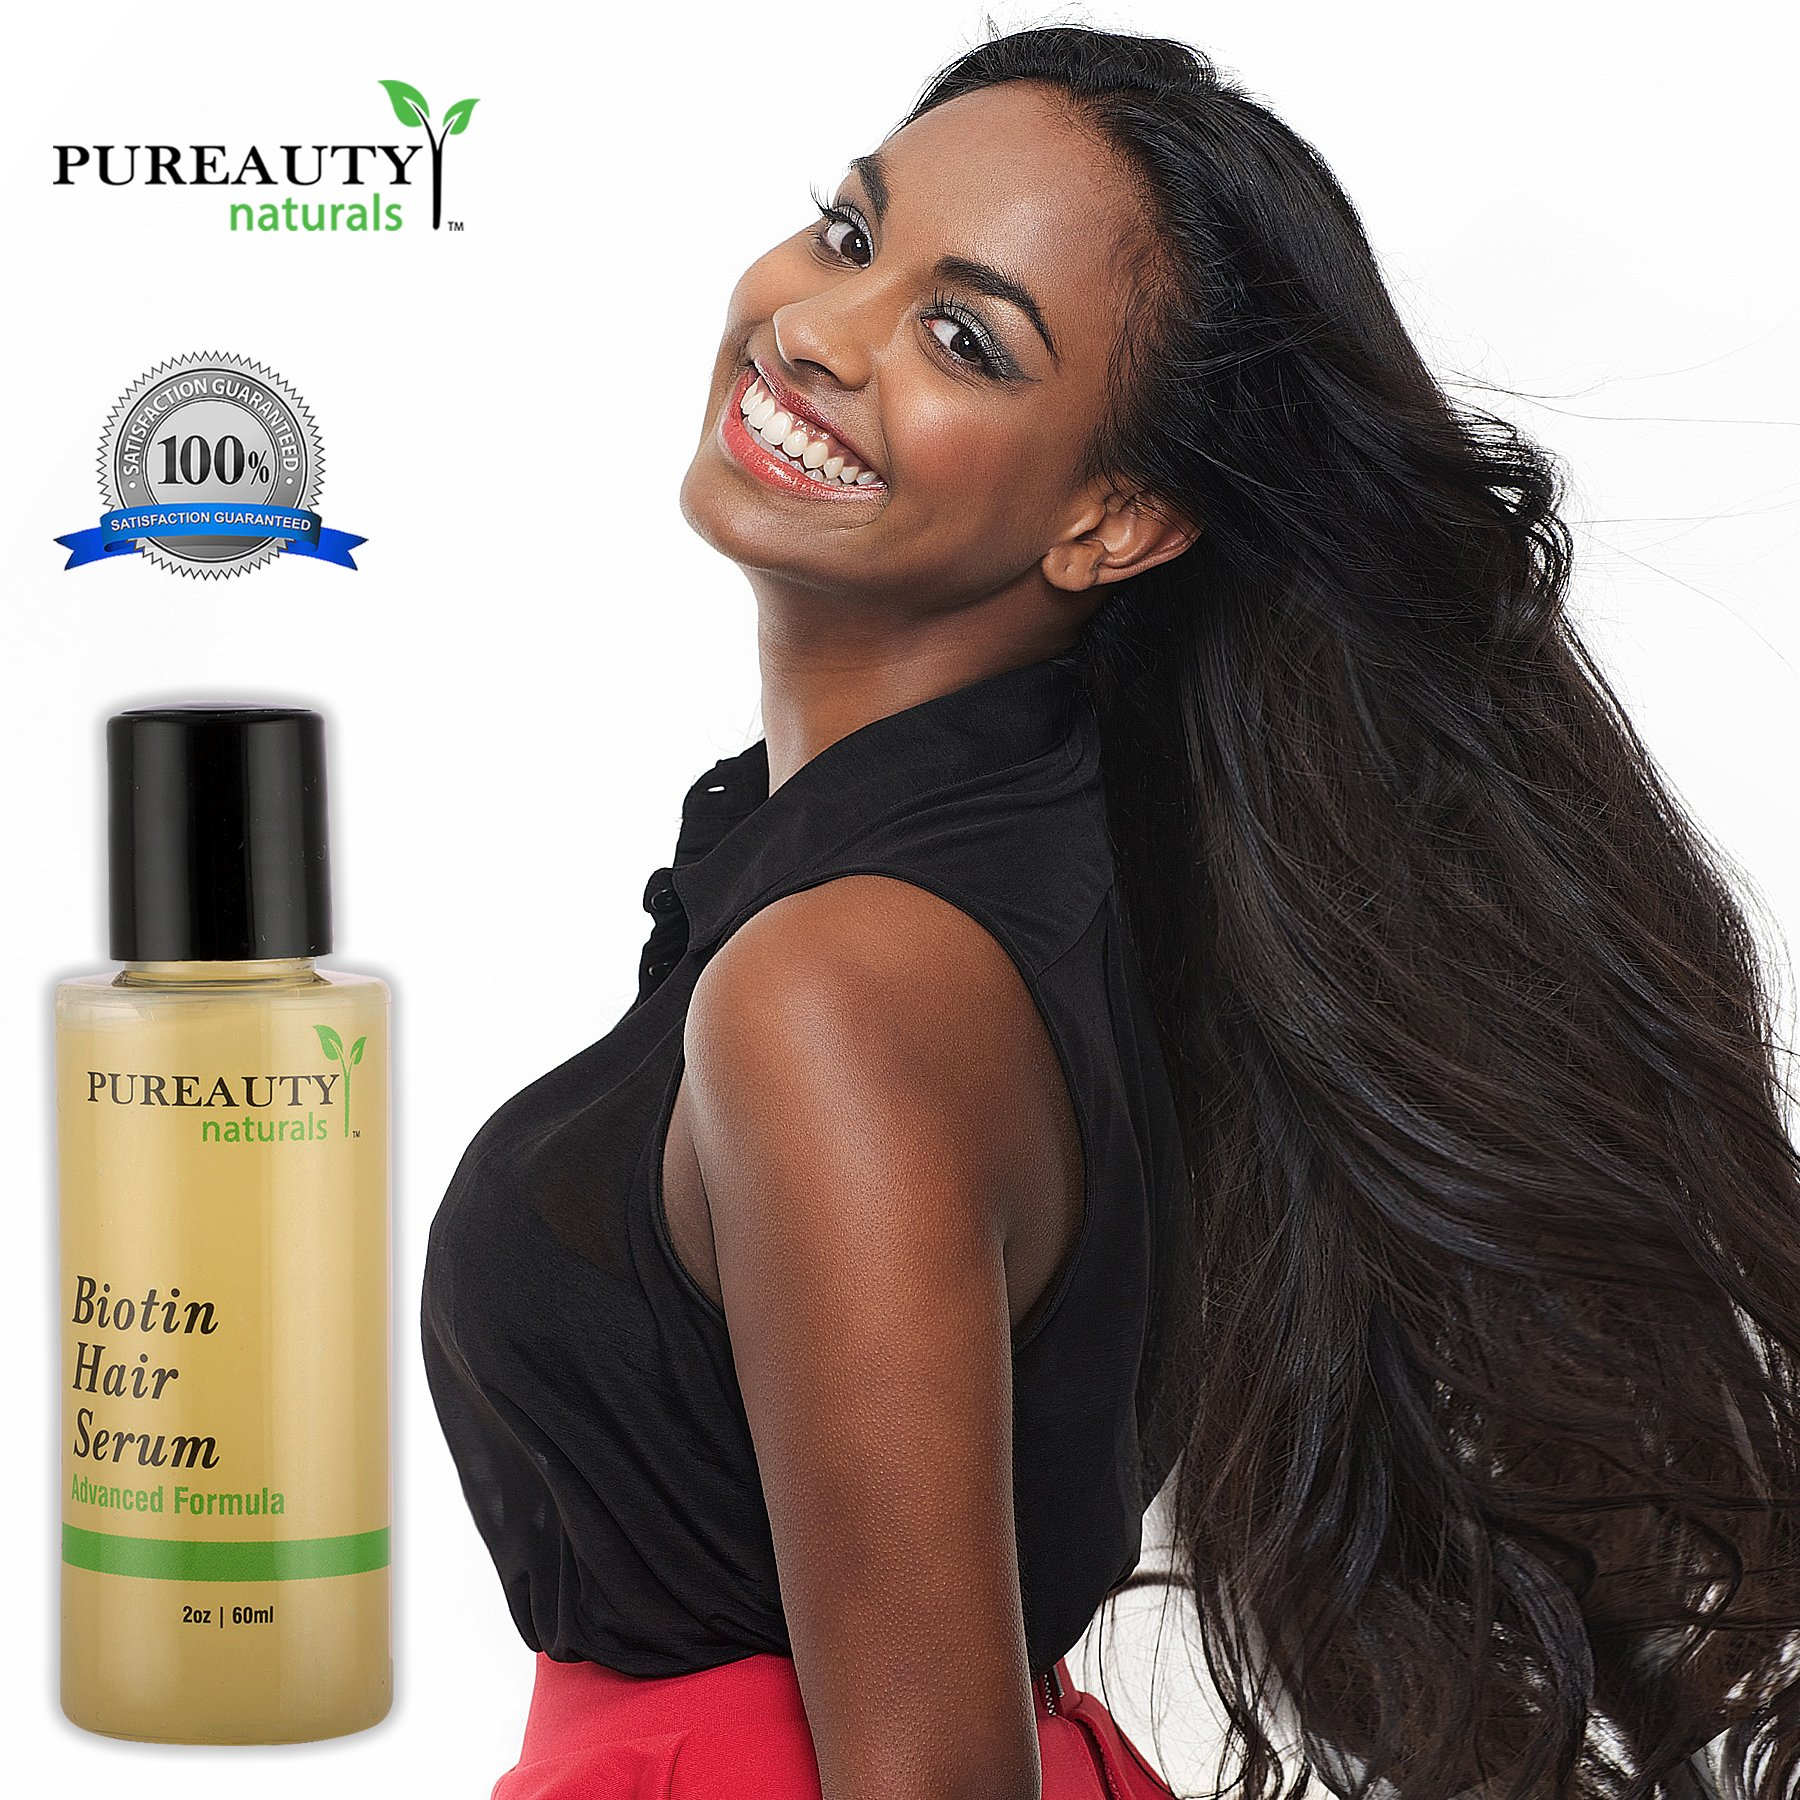 Biotin Hair Growth Serum by Pureauty Naturals – Advanced Topical Formula to Help Grow Healthy, Strong Hair – Suitable For Men & Women Of All Hair Types – Hair Loss Support by Pureauty Naturals (Image #6)